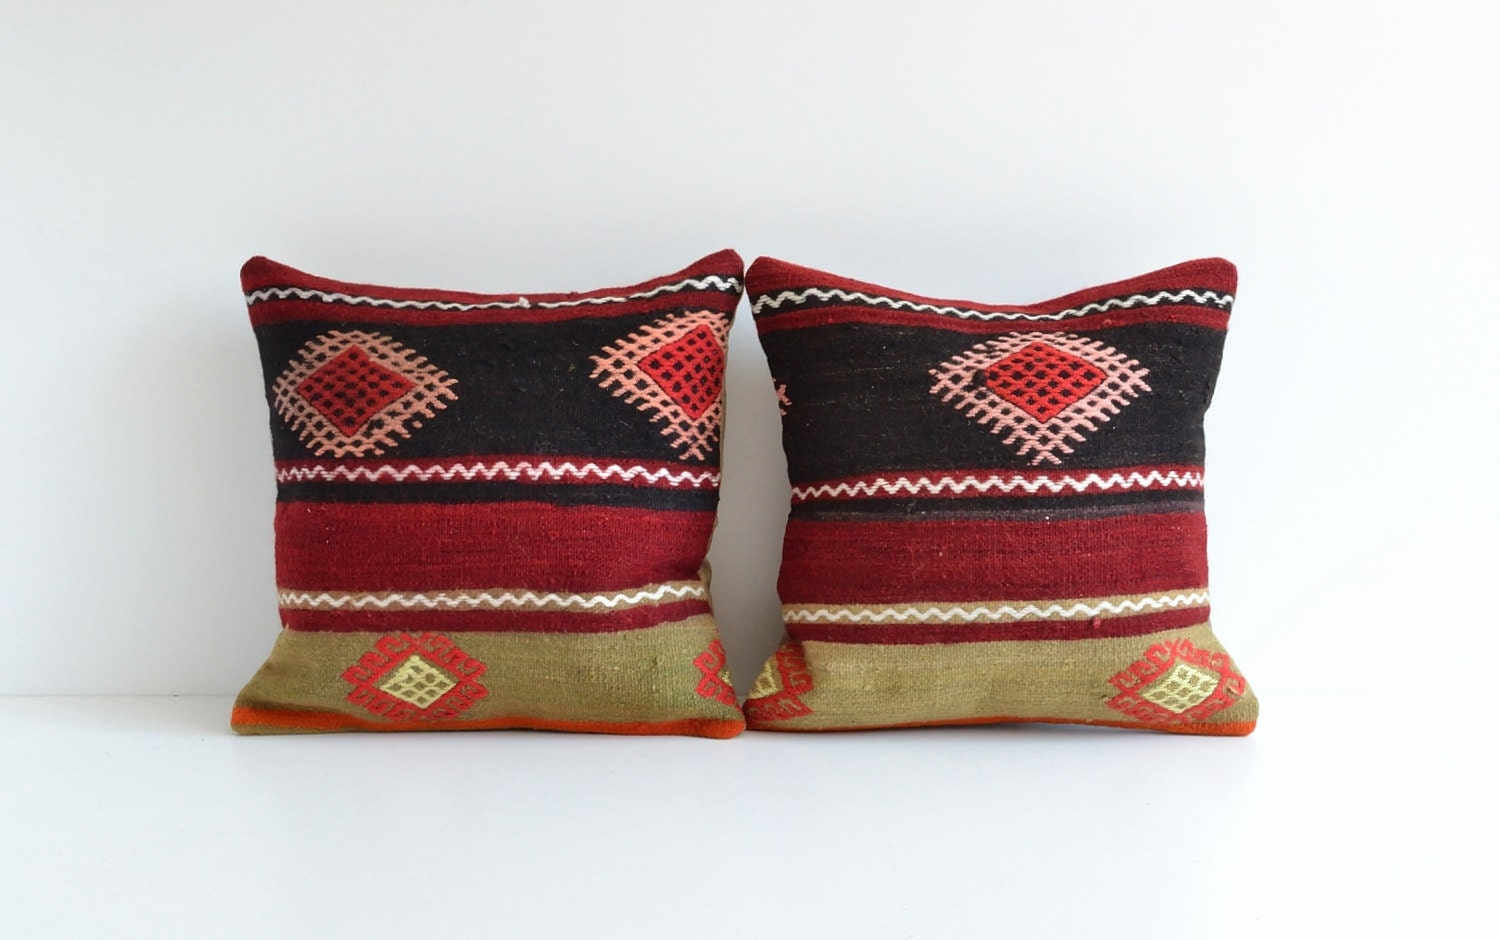 Decorative Pillows Kilim : Kilim Throw Pillows Set Of 2 Bohemian Chic Home Decor by pillowme